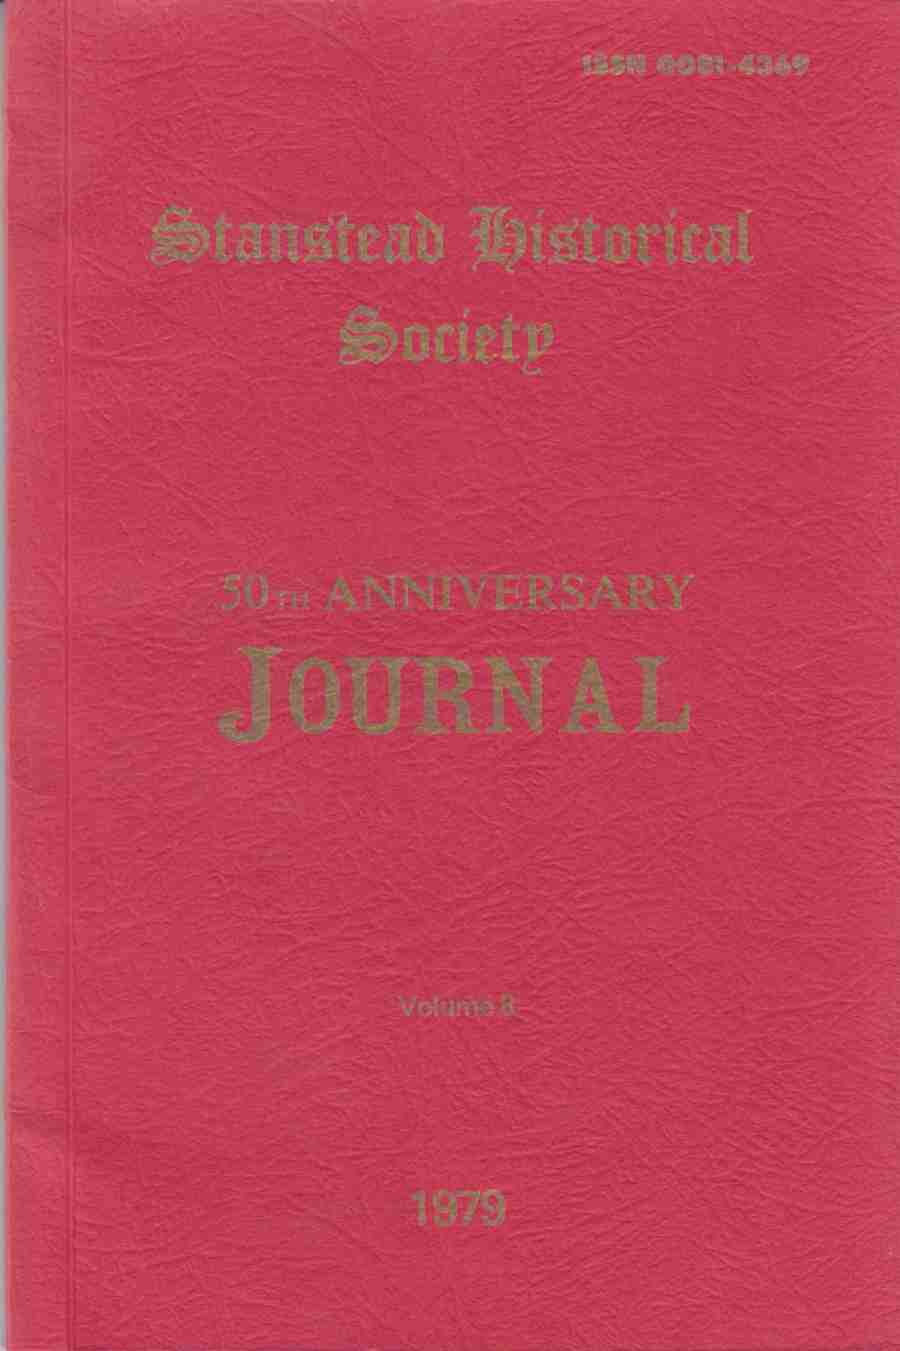 Image for Stanstead Historical Society 50th Anniversary Journal Volume 8